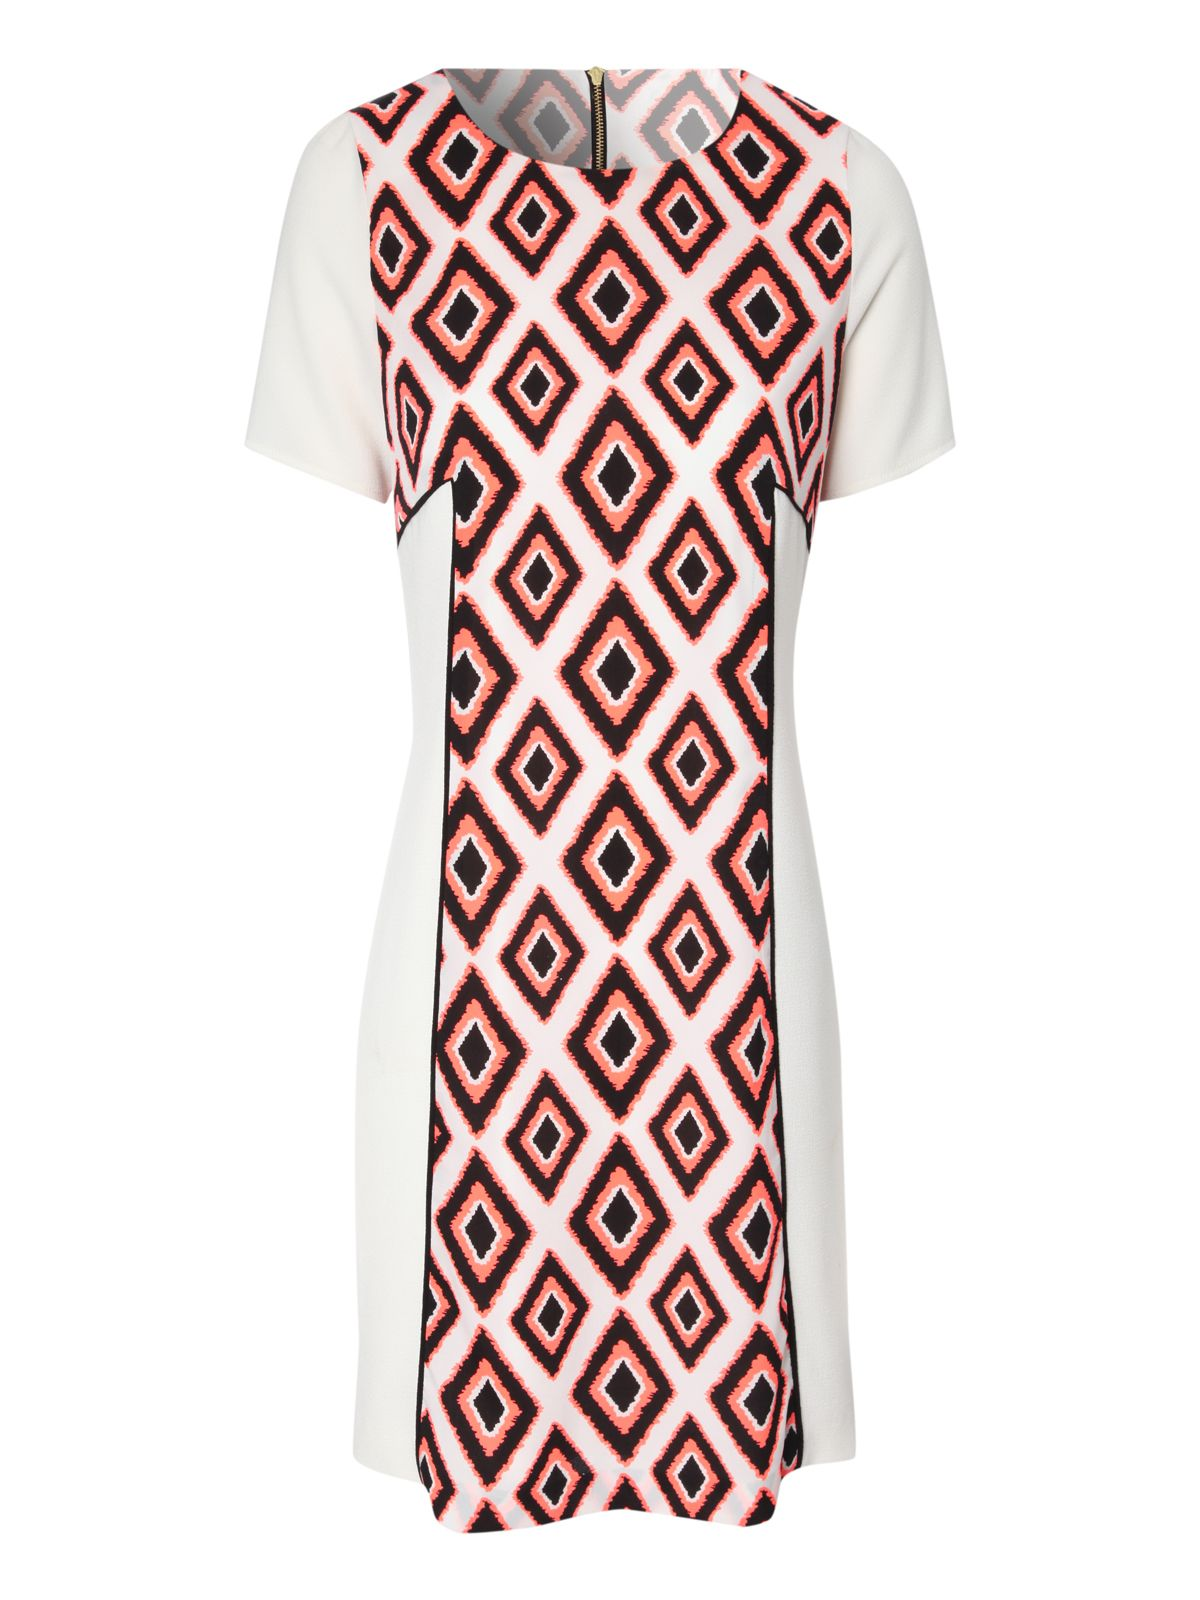 Diamond tribal print shift dress